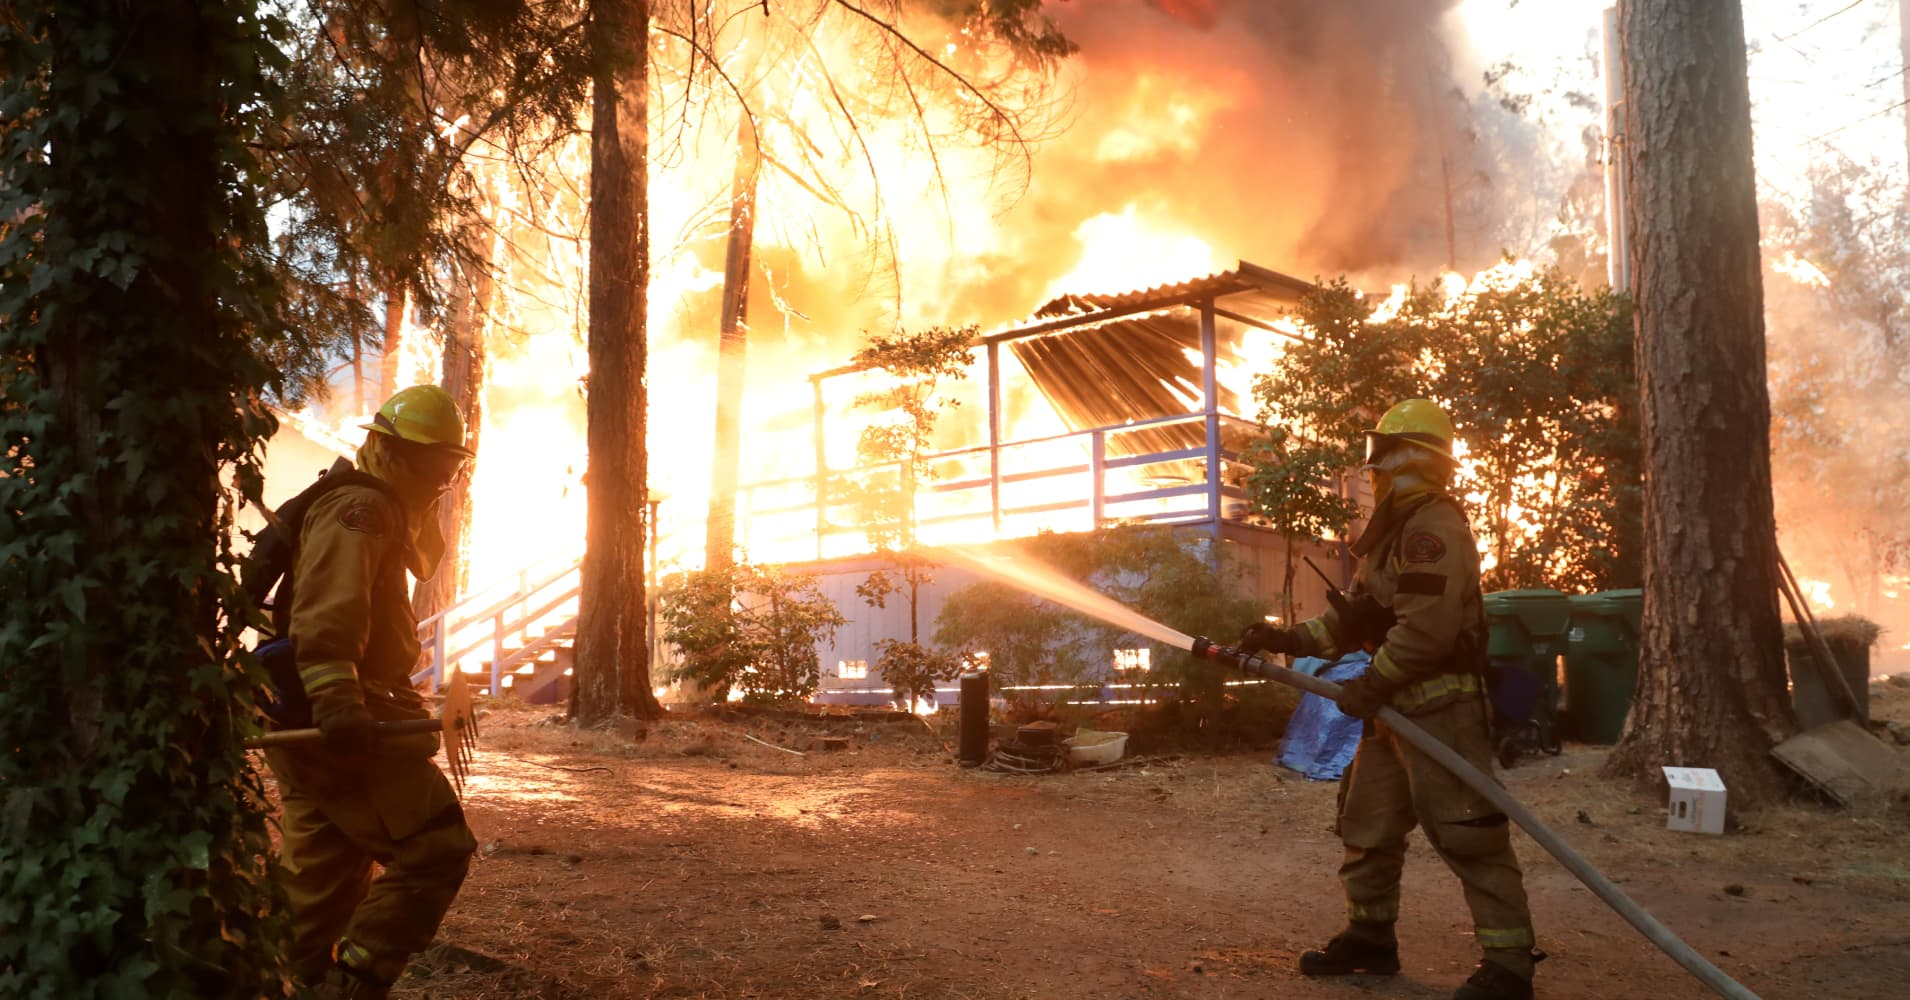 This Building Material Could've Saved California Houses from Fires, but it's Rarely Used in the US